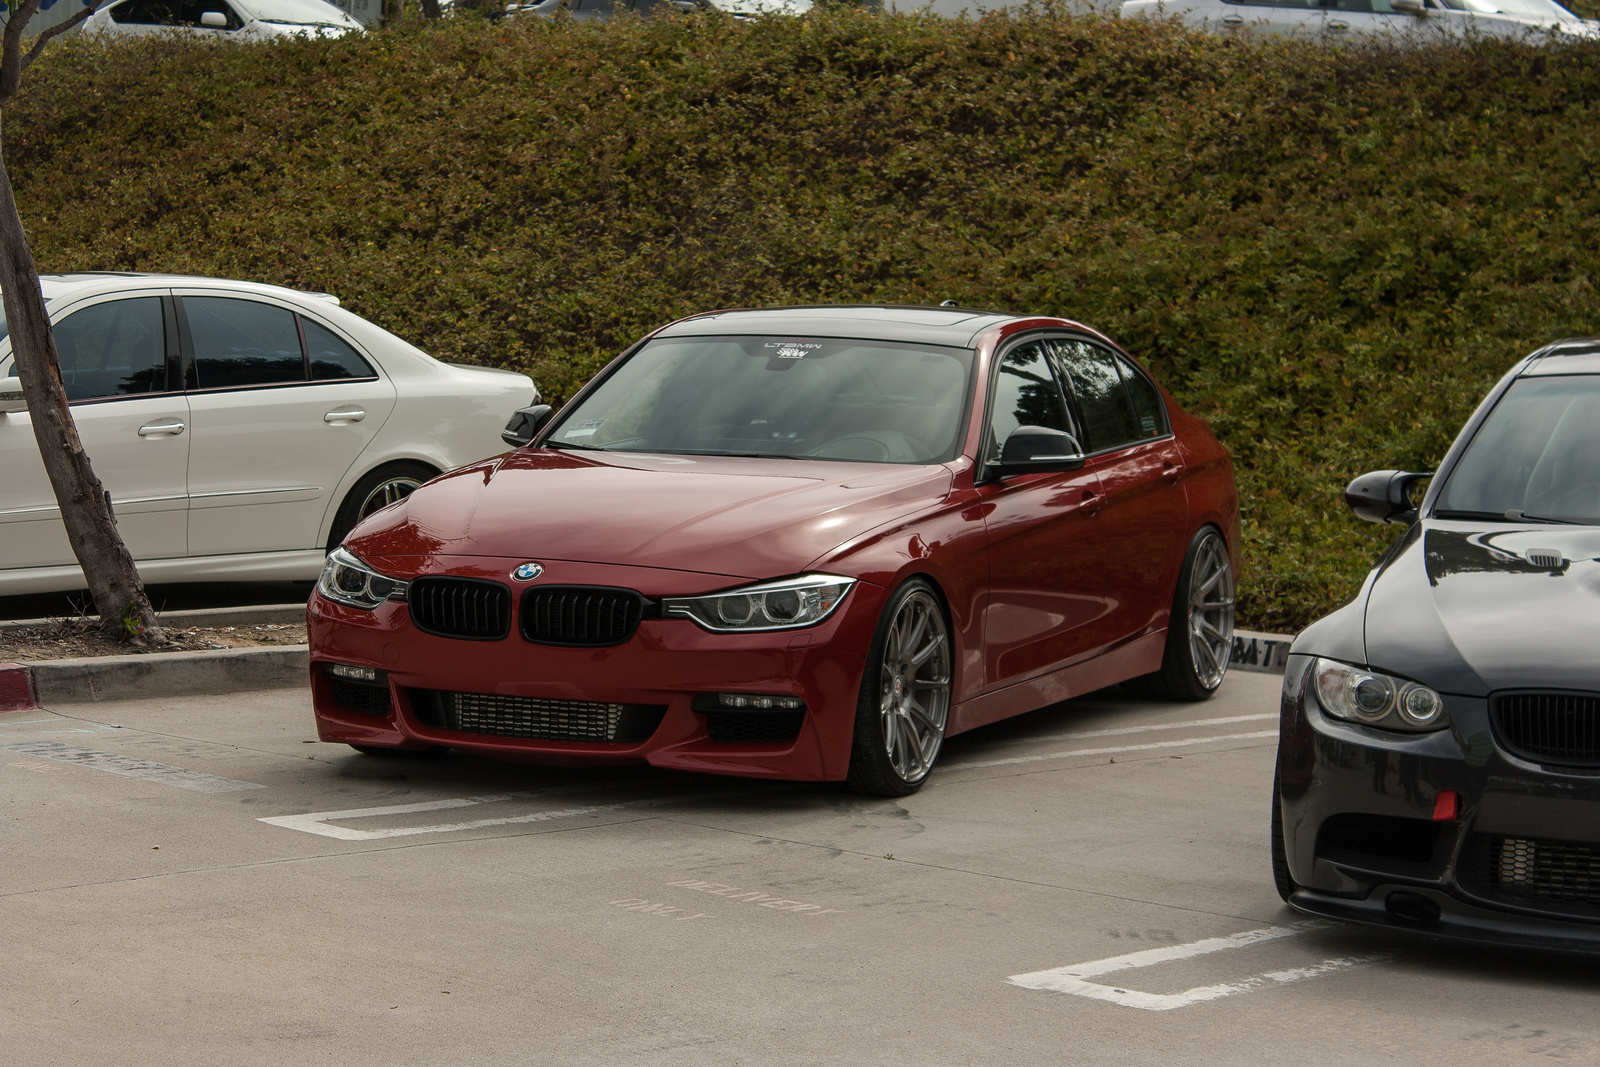 BMW 335i F30 | Flickr - Photo Sharing!